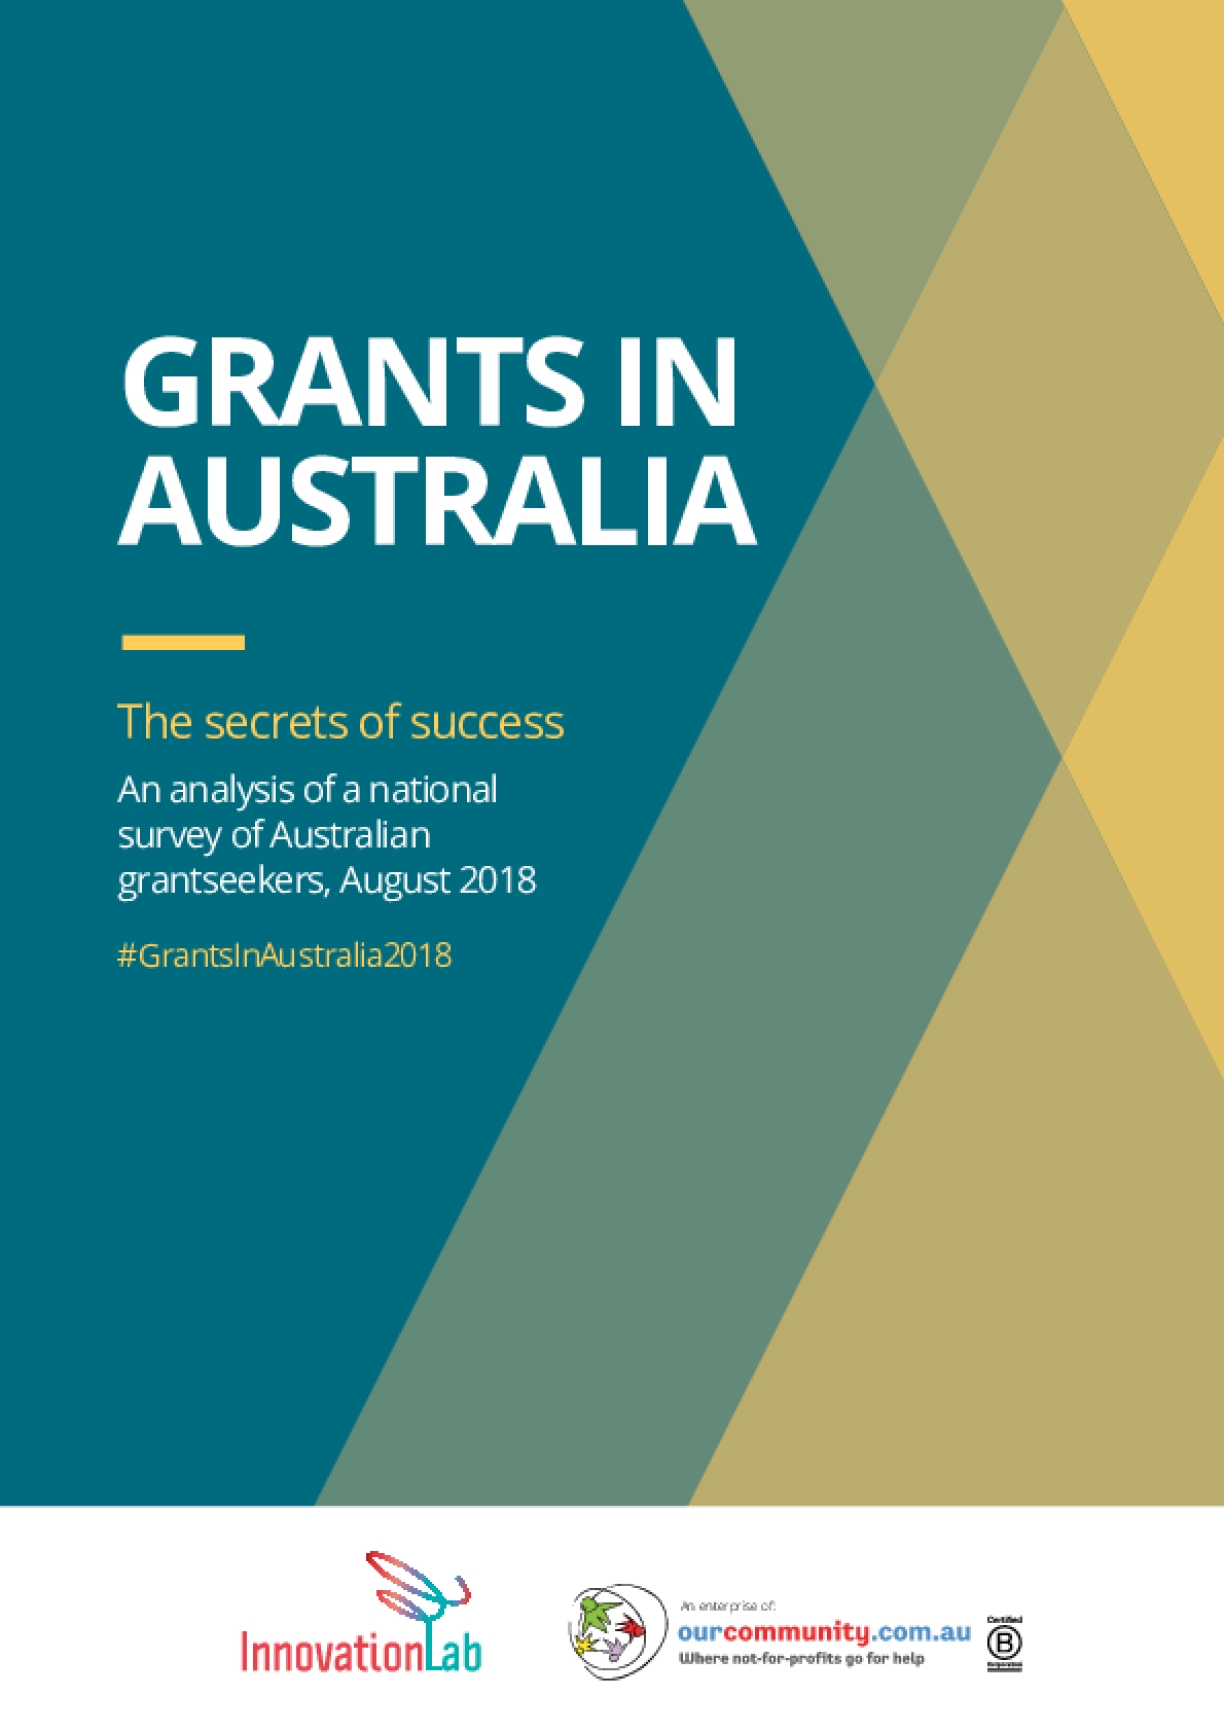 Grants in Australia: The secrets of success